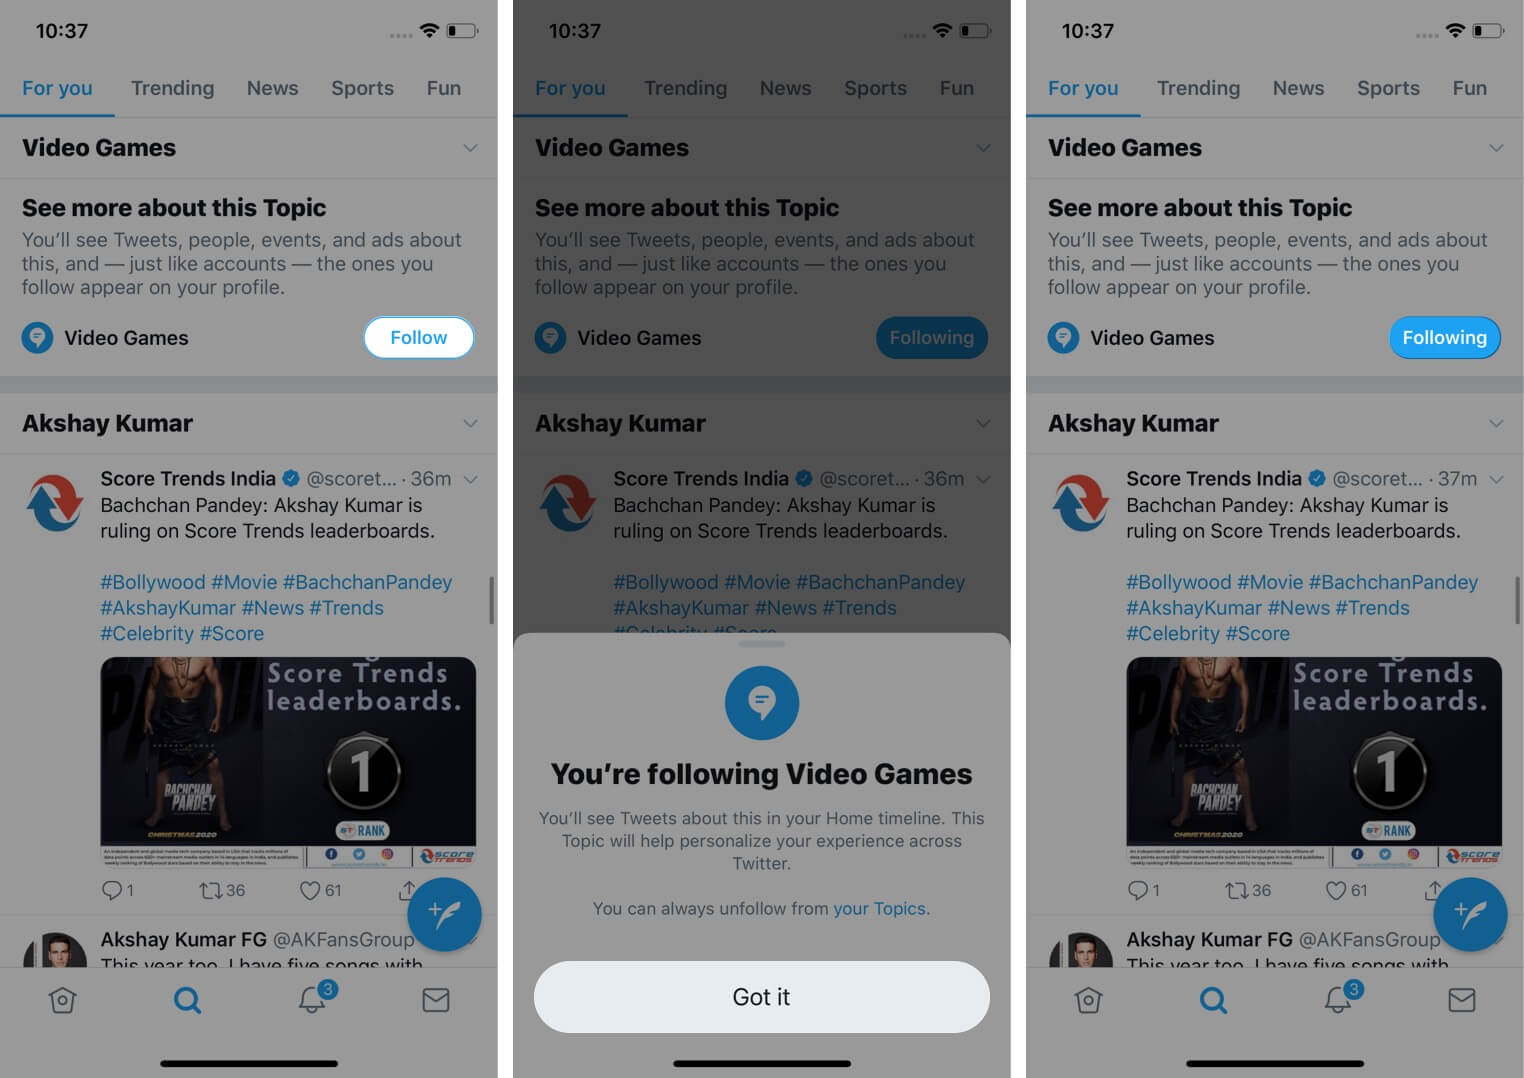 Open Topic and Tap on Follow in iOS Twitter App